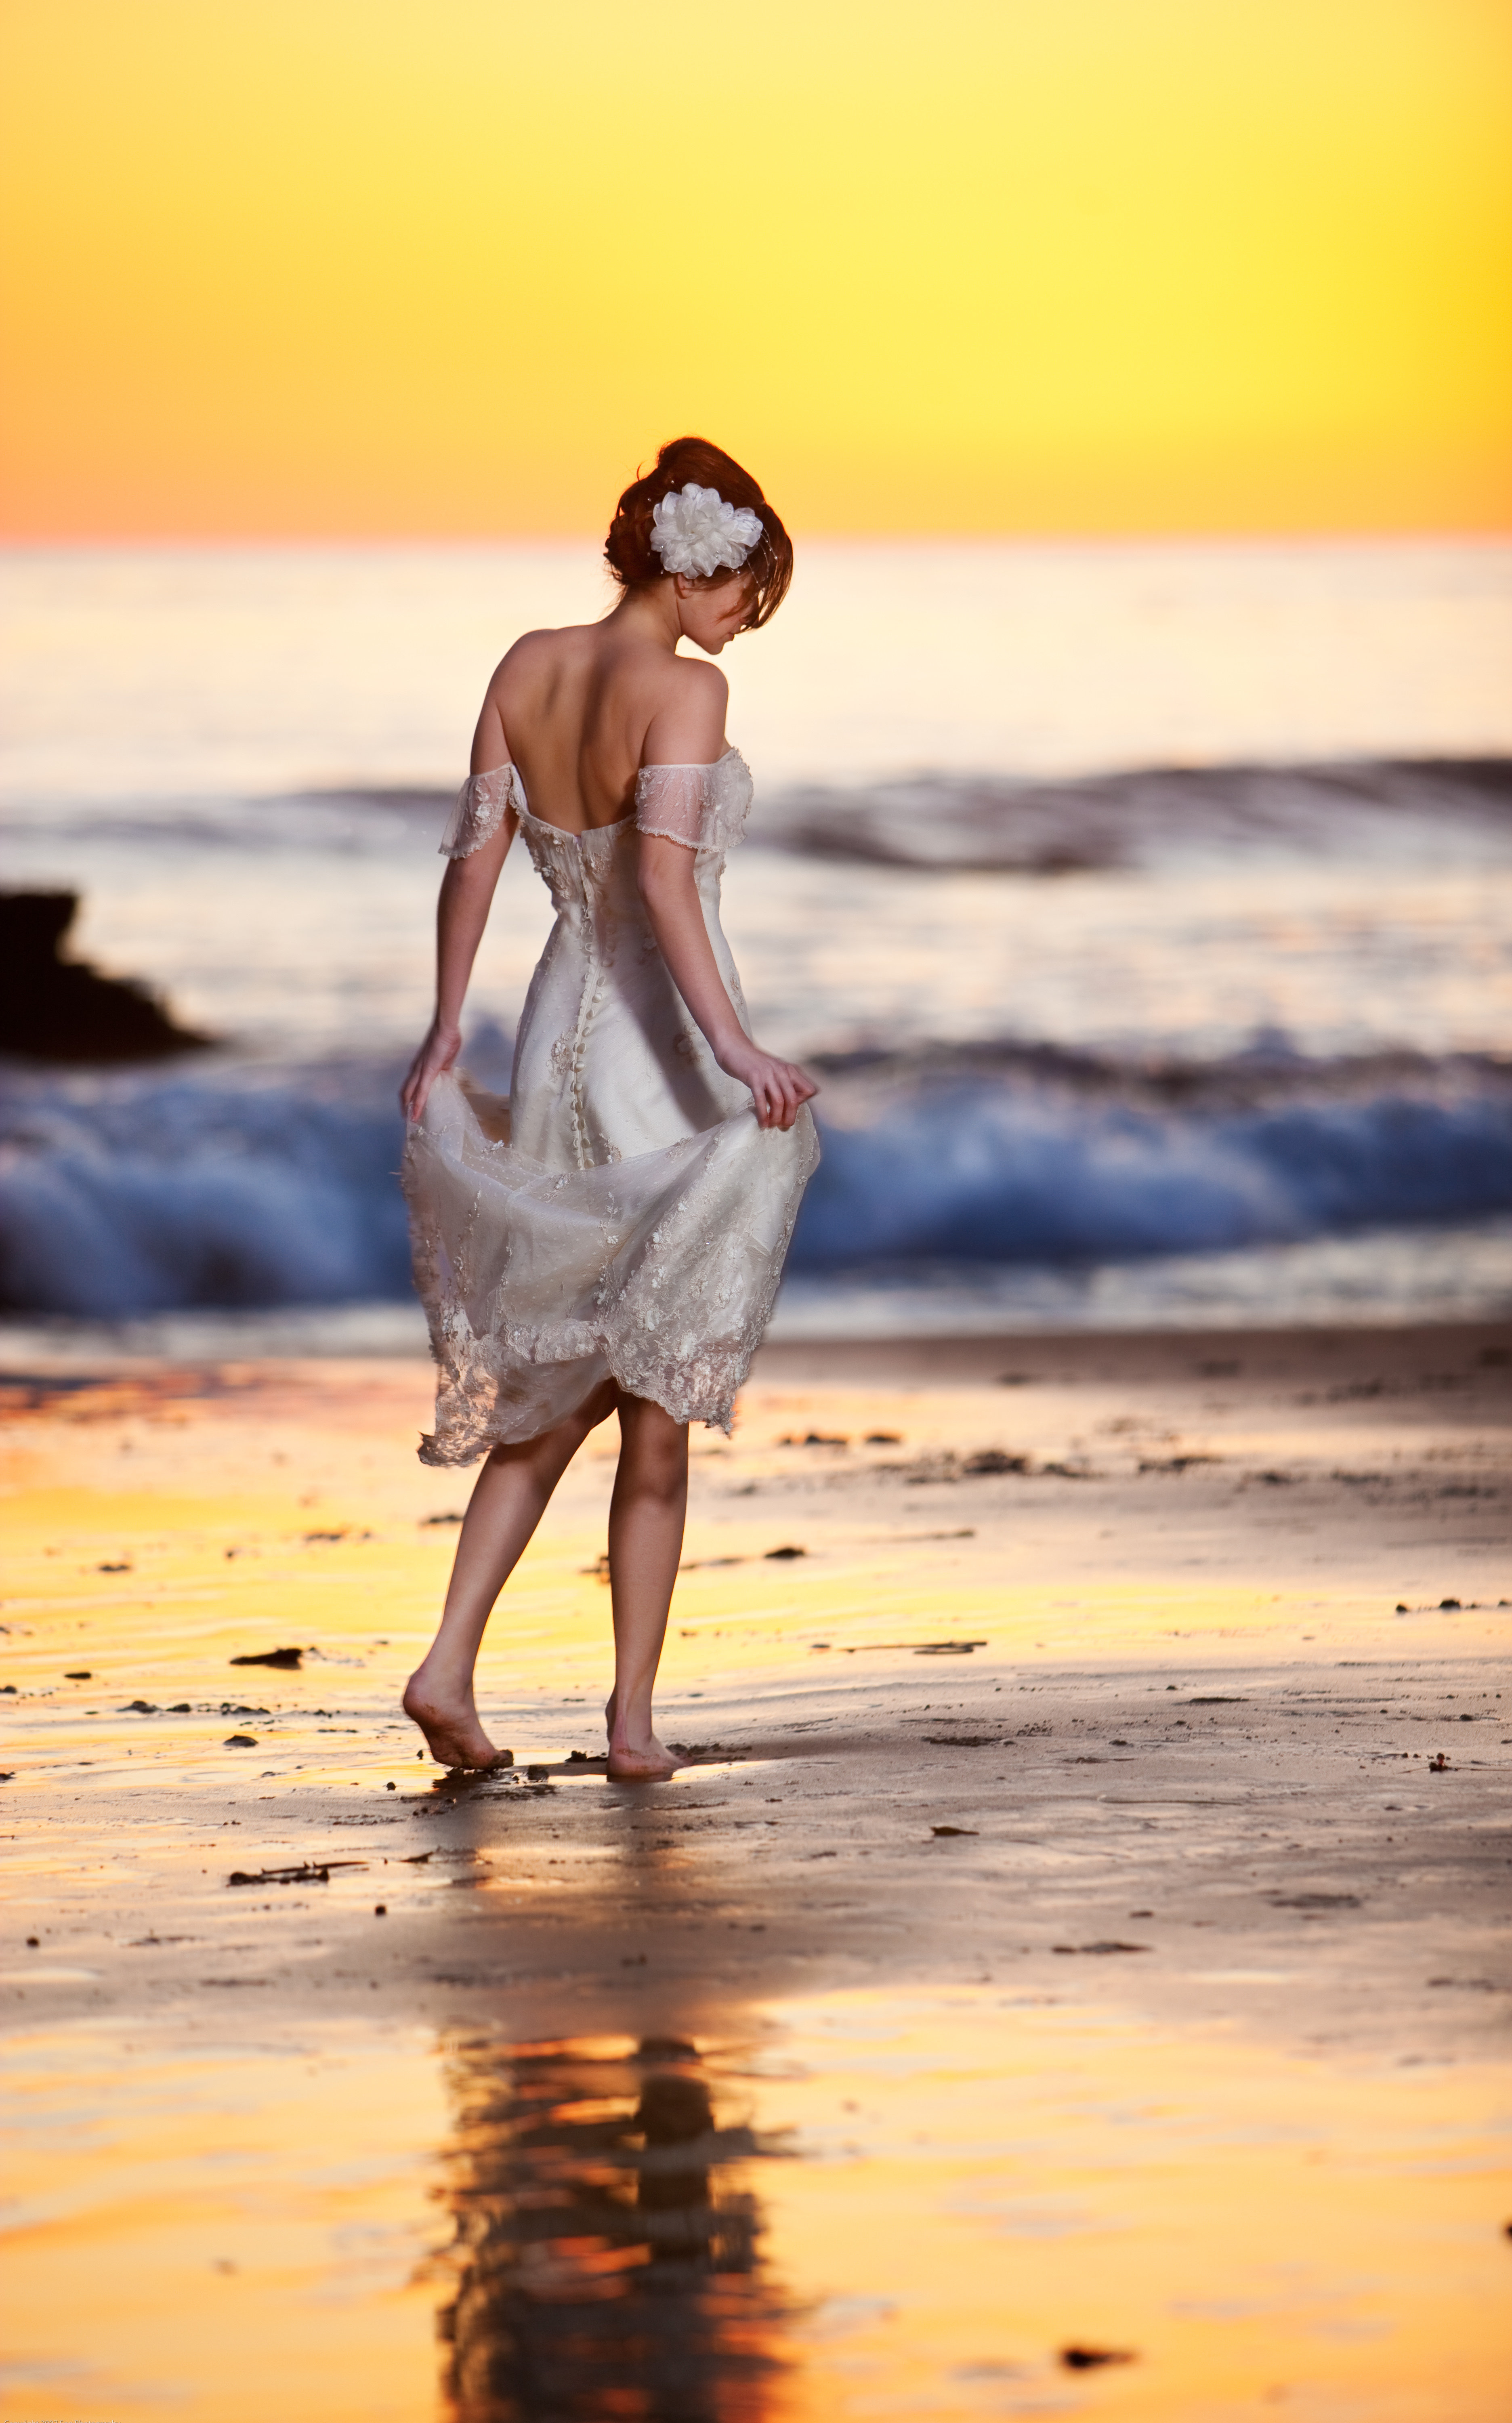 Wedding Dresses, Beach Wedding Dresses, Fashion, yellow, orange, red, purple, gold, dress, Beach, Bride, Wedding, Sunset, Golden, Vera, Wang, Capture the love, Striding